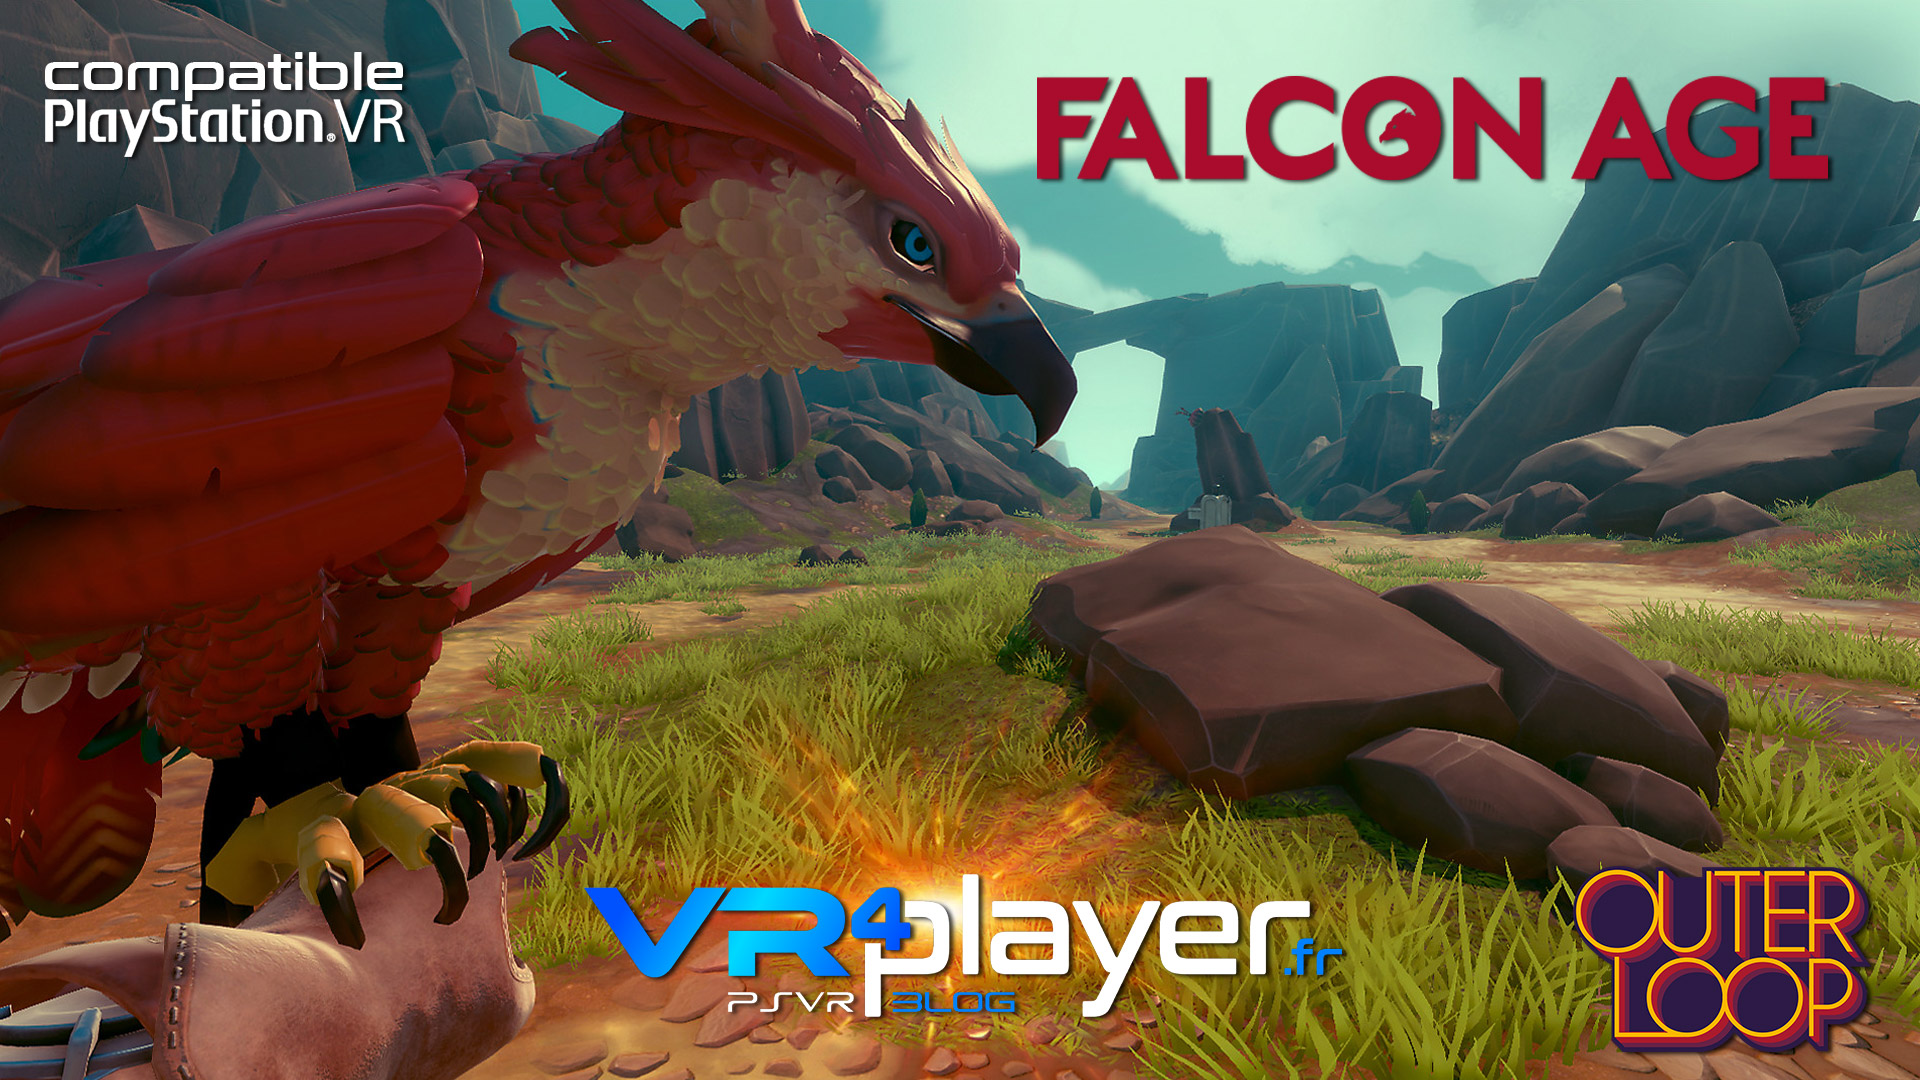 video de gameplay de falcon age psvr - vr4player.fr